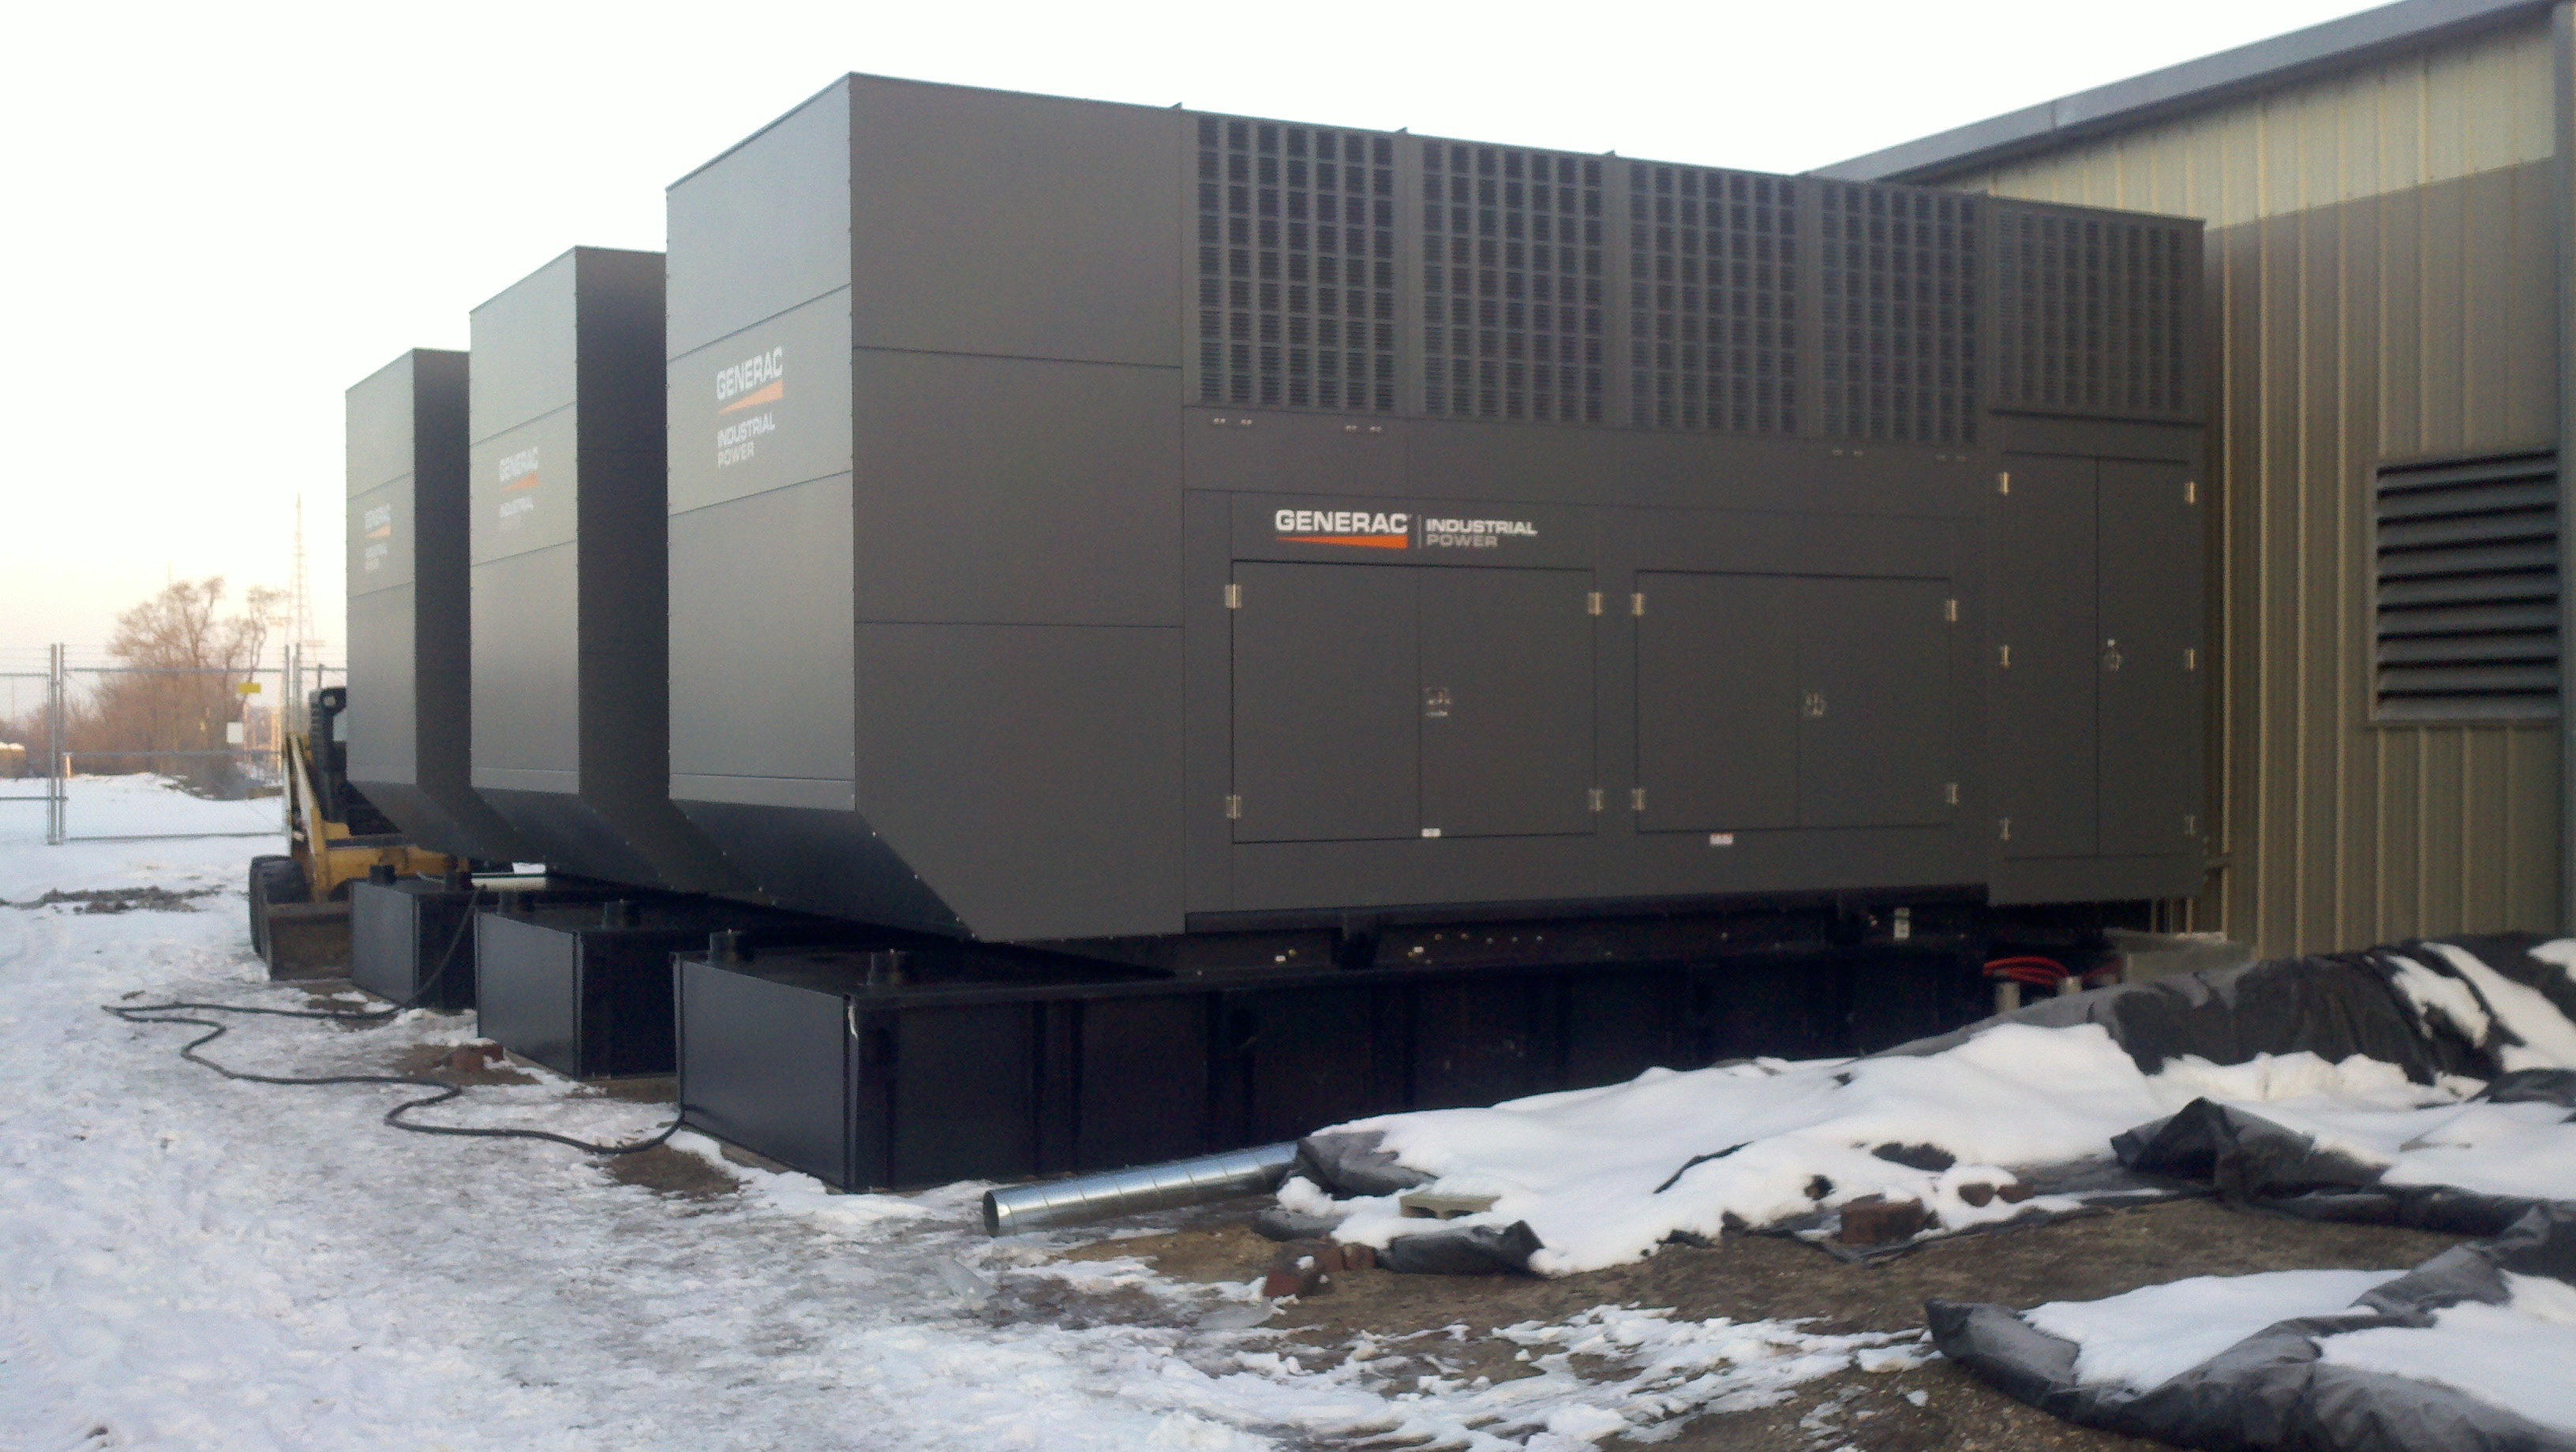 Power Generator by Generac in Evansville